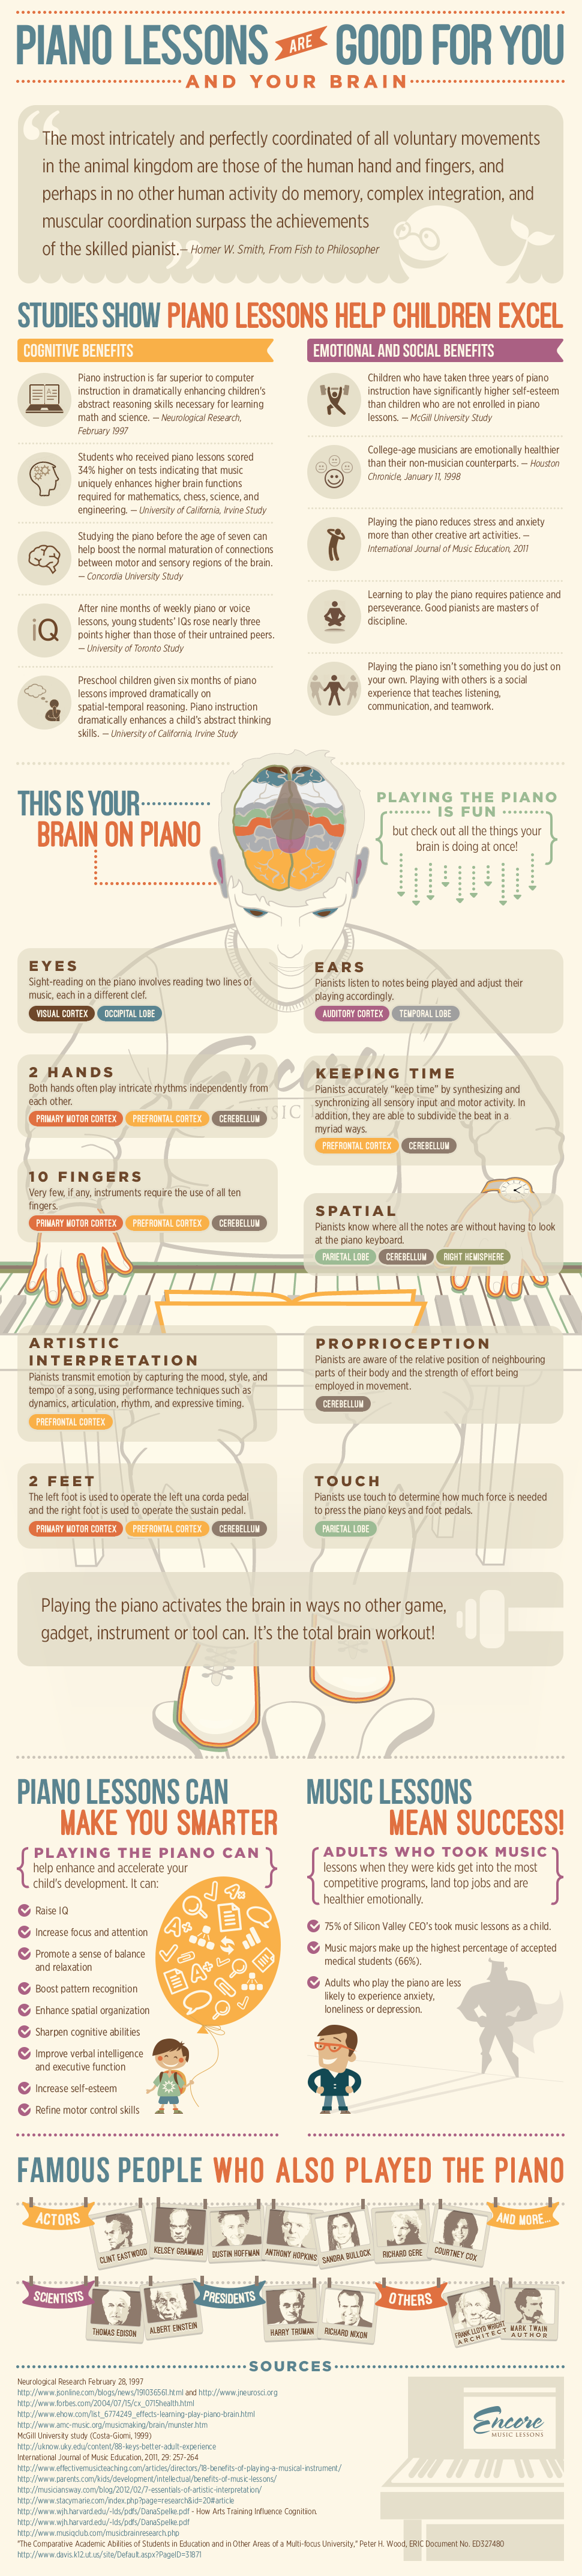 infographic-piano-lessons-are-good-for-you-and-your-brain.png